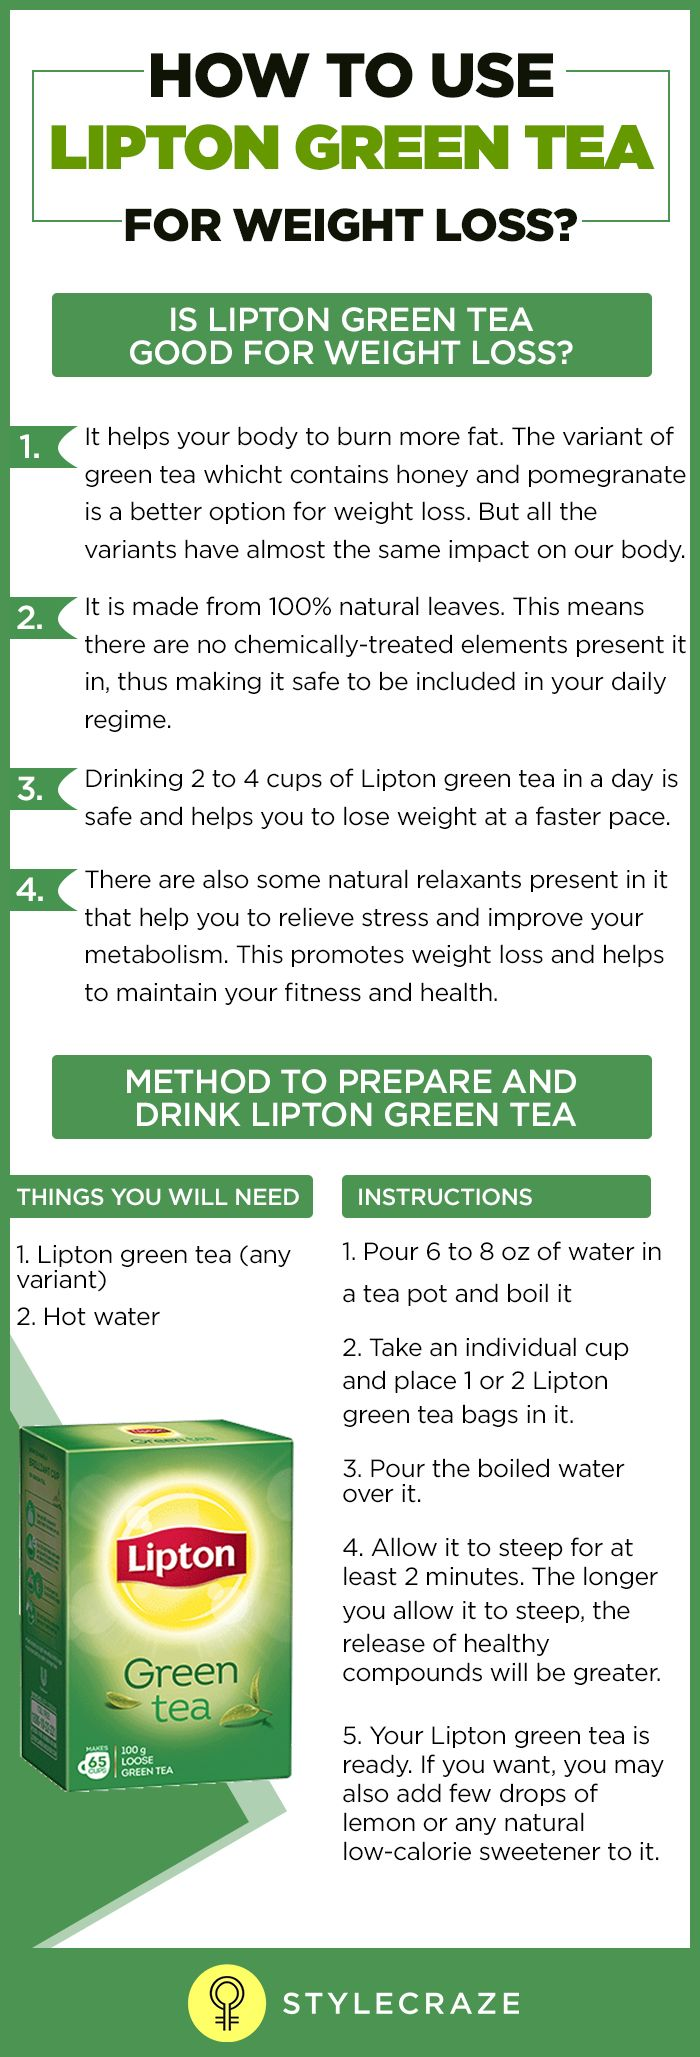 Green tea is a healthy drink which refreshes your body and mind. It has various benefits as this drink keeps your body fit and slim. It contains polyphenols that help in burning fat. It is also a powerhouse of antioxidants that blocks the conversion of ingested calories into fat.